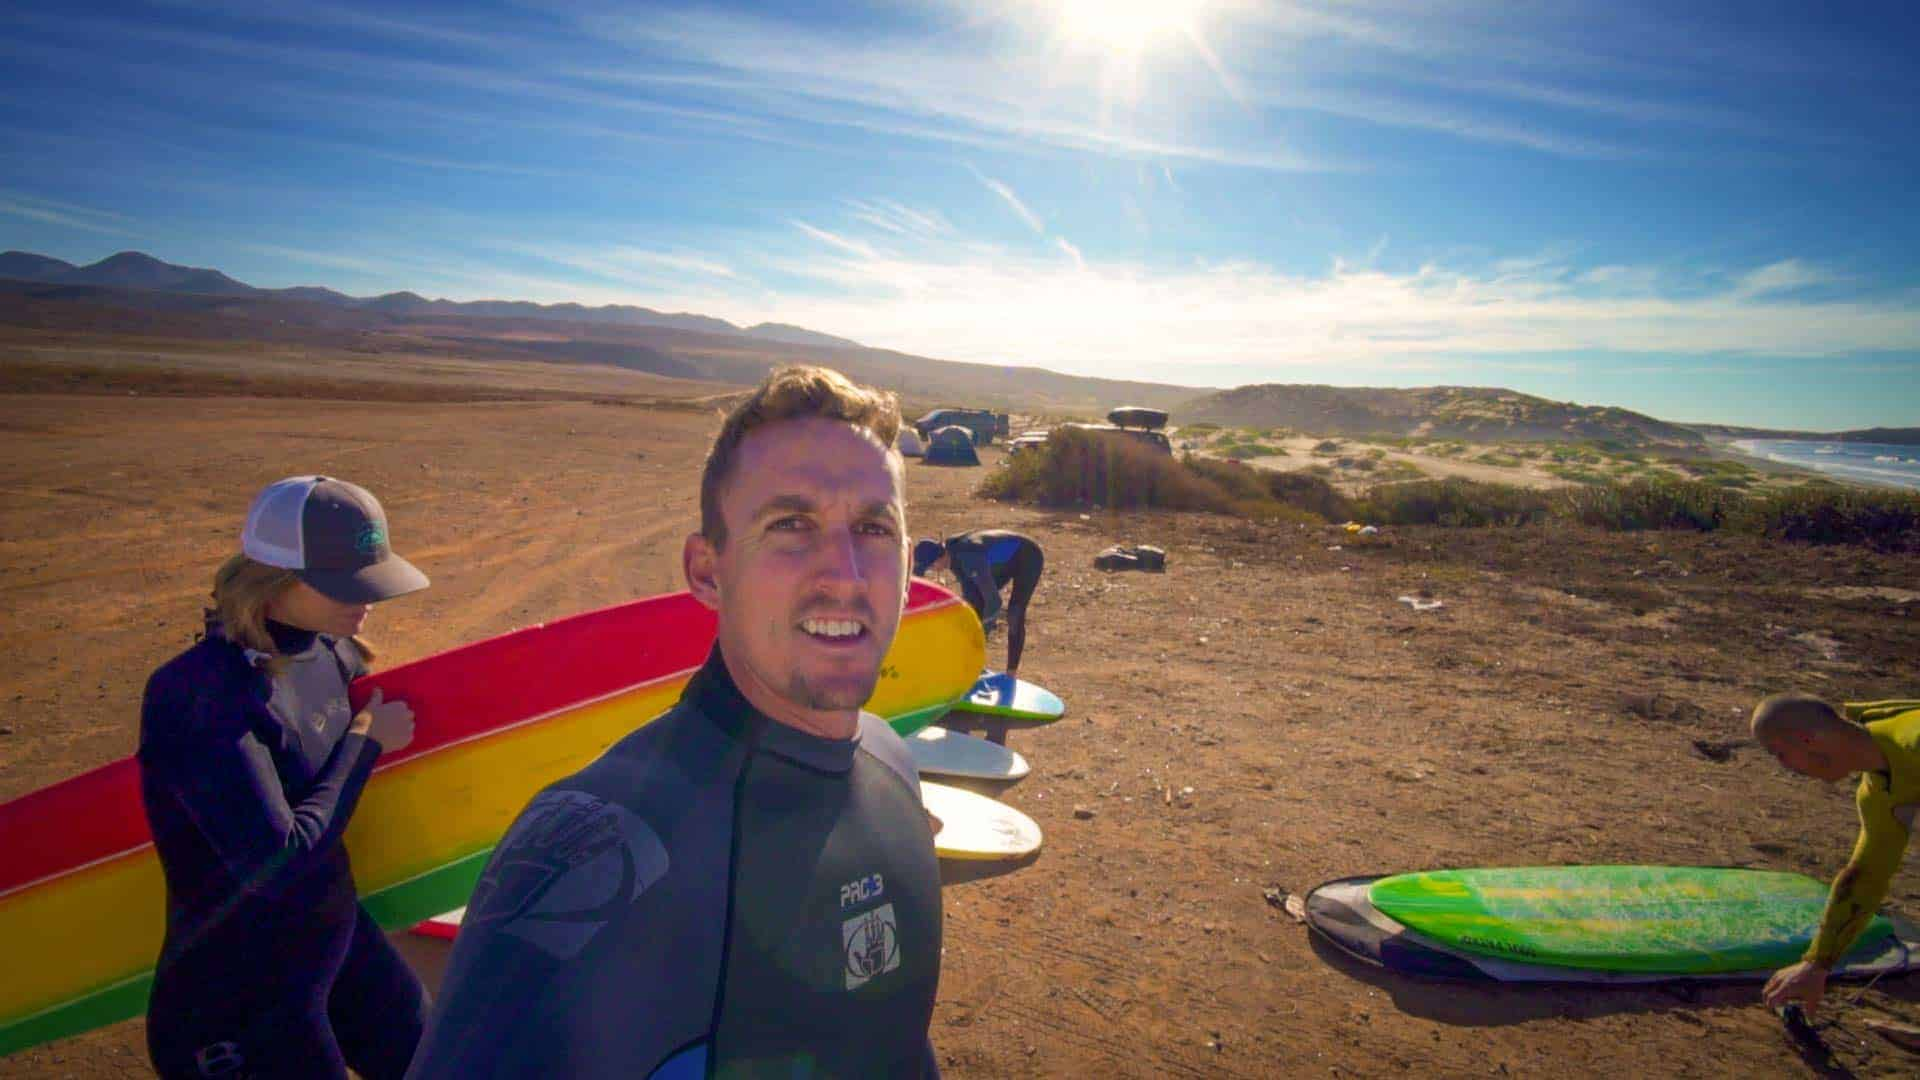 Adventure-in-a-backpack-baja-california-surf-tour-78